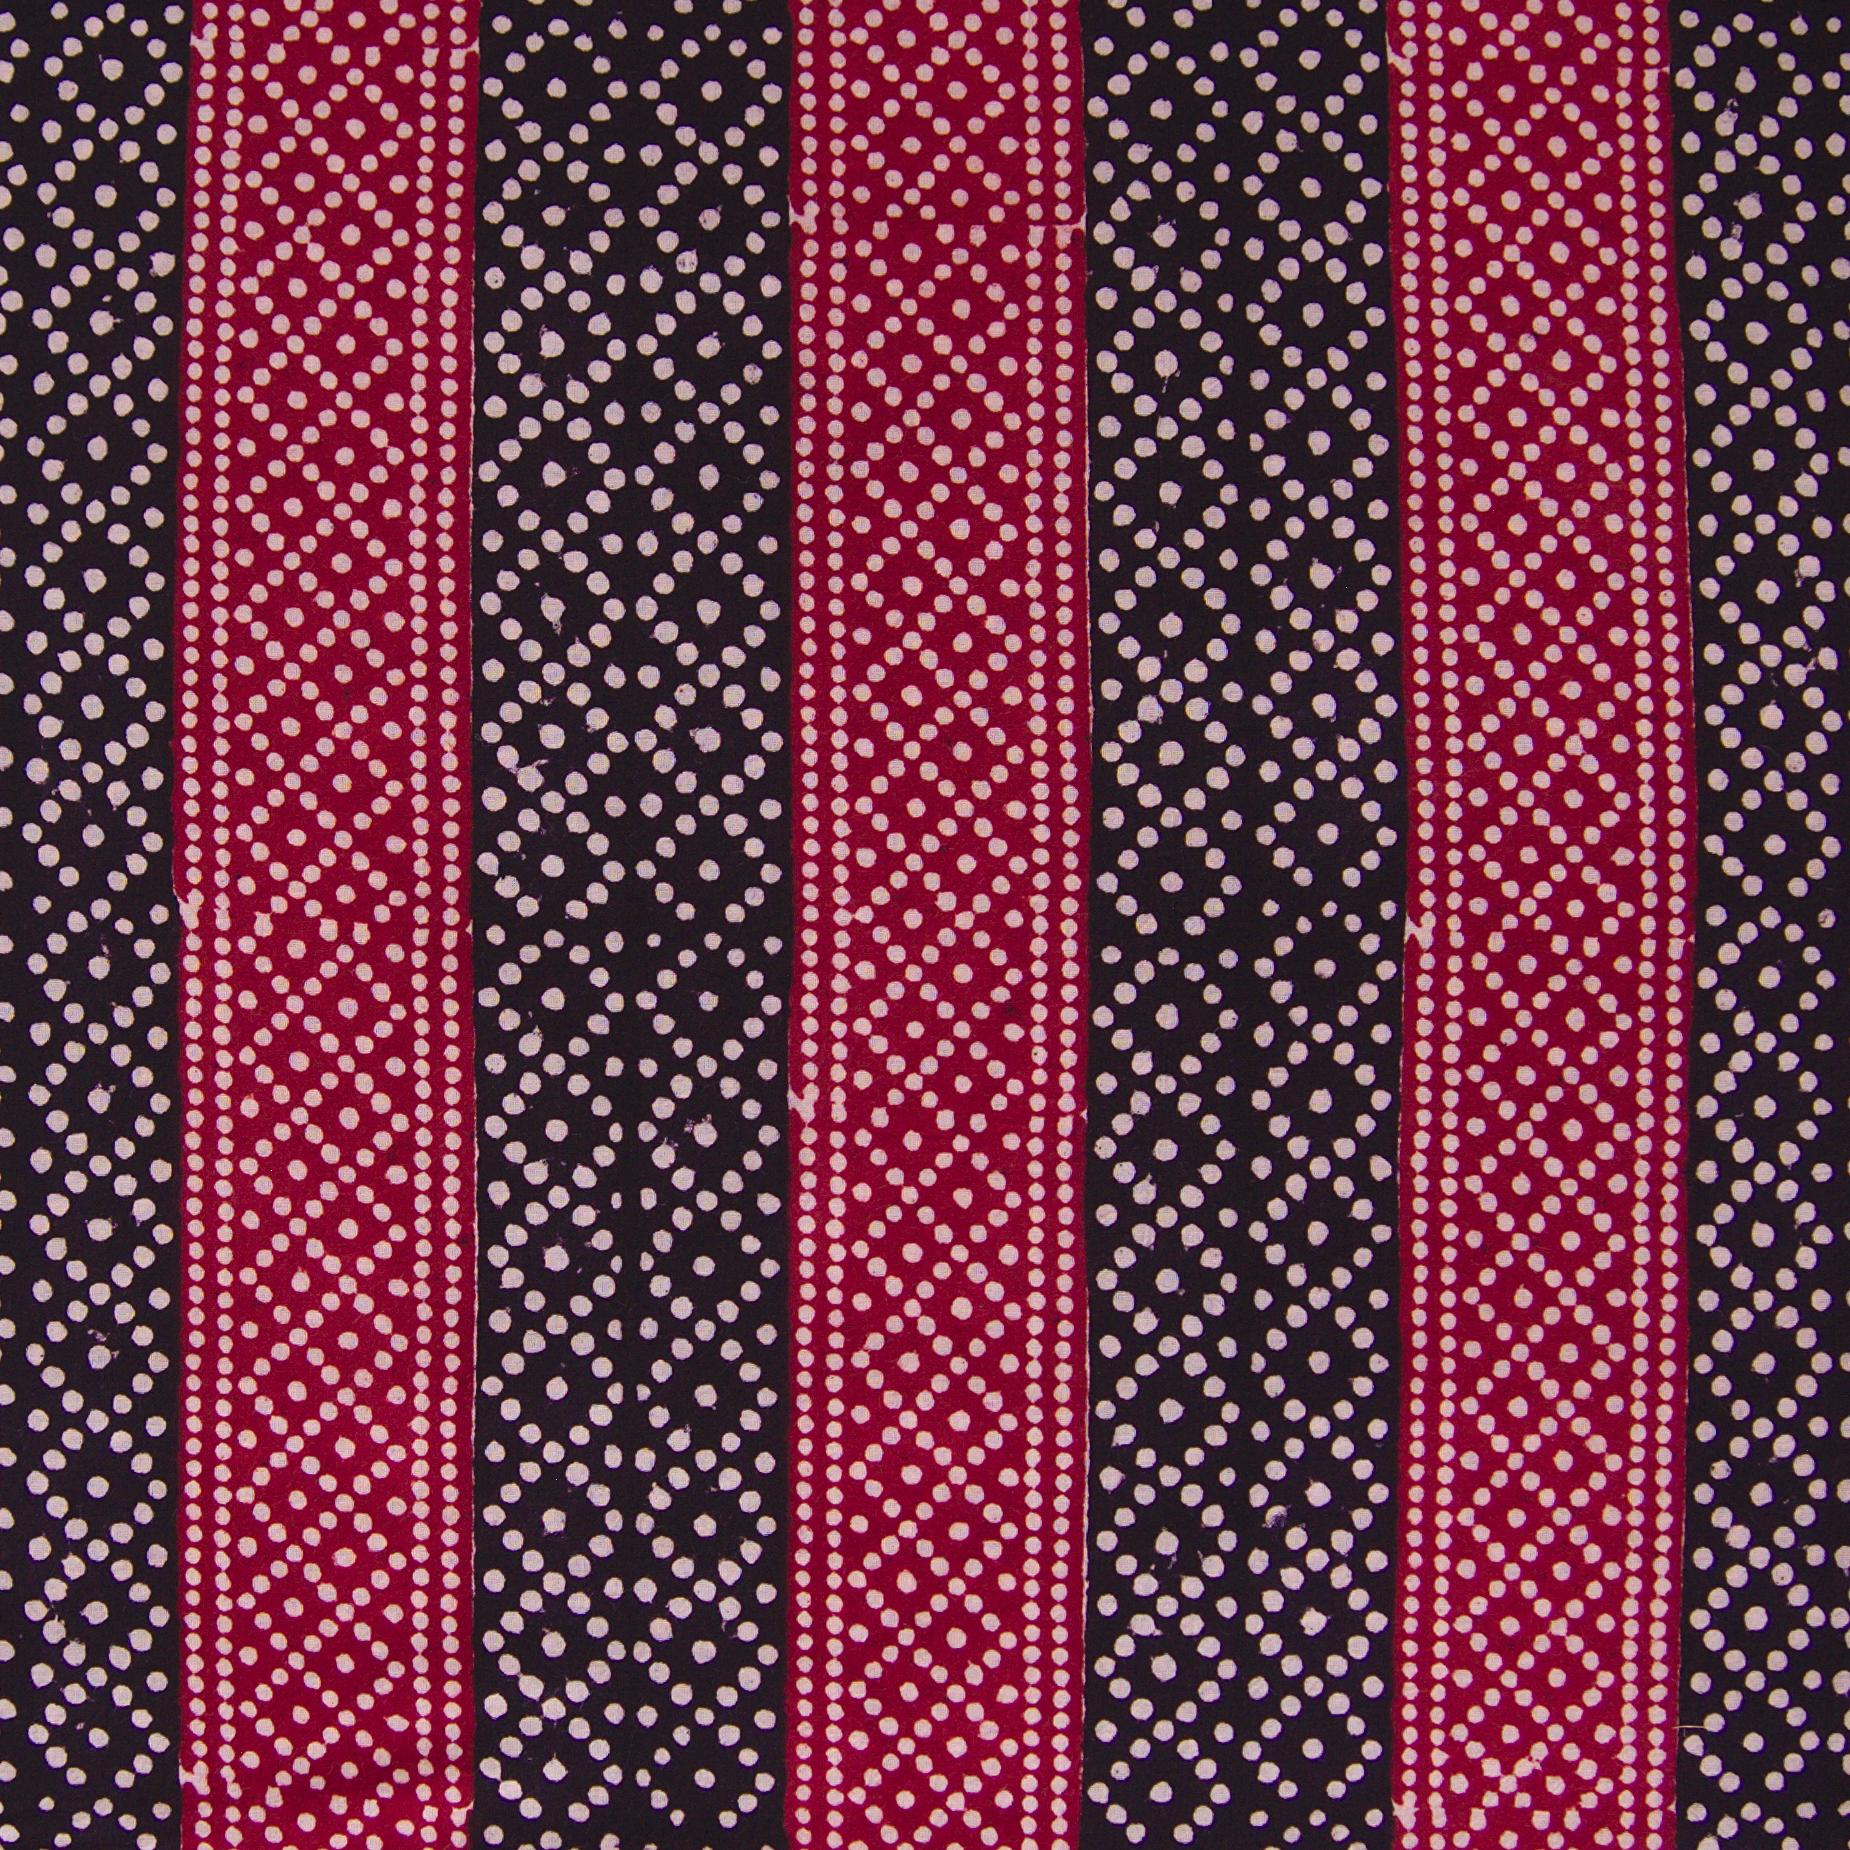 100% Block-Printed Cotton Fabric From India - Pixels Design - Iron Rust Black & Alizarin Red Dyes - Flat - Live